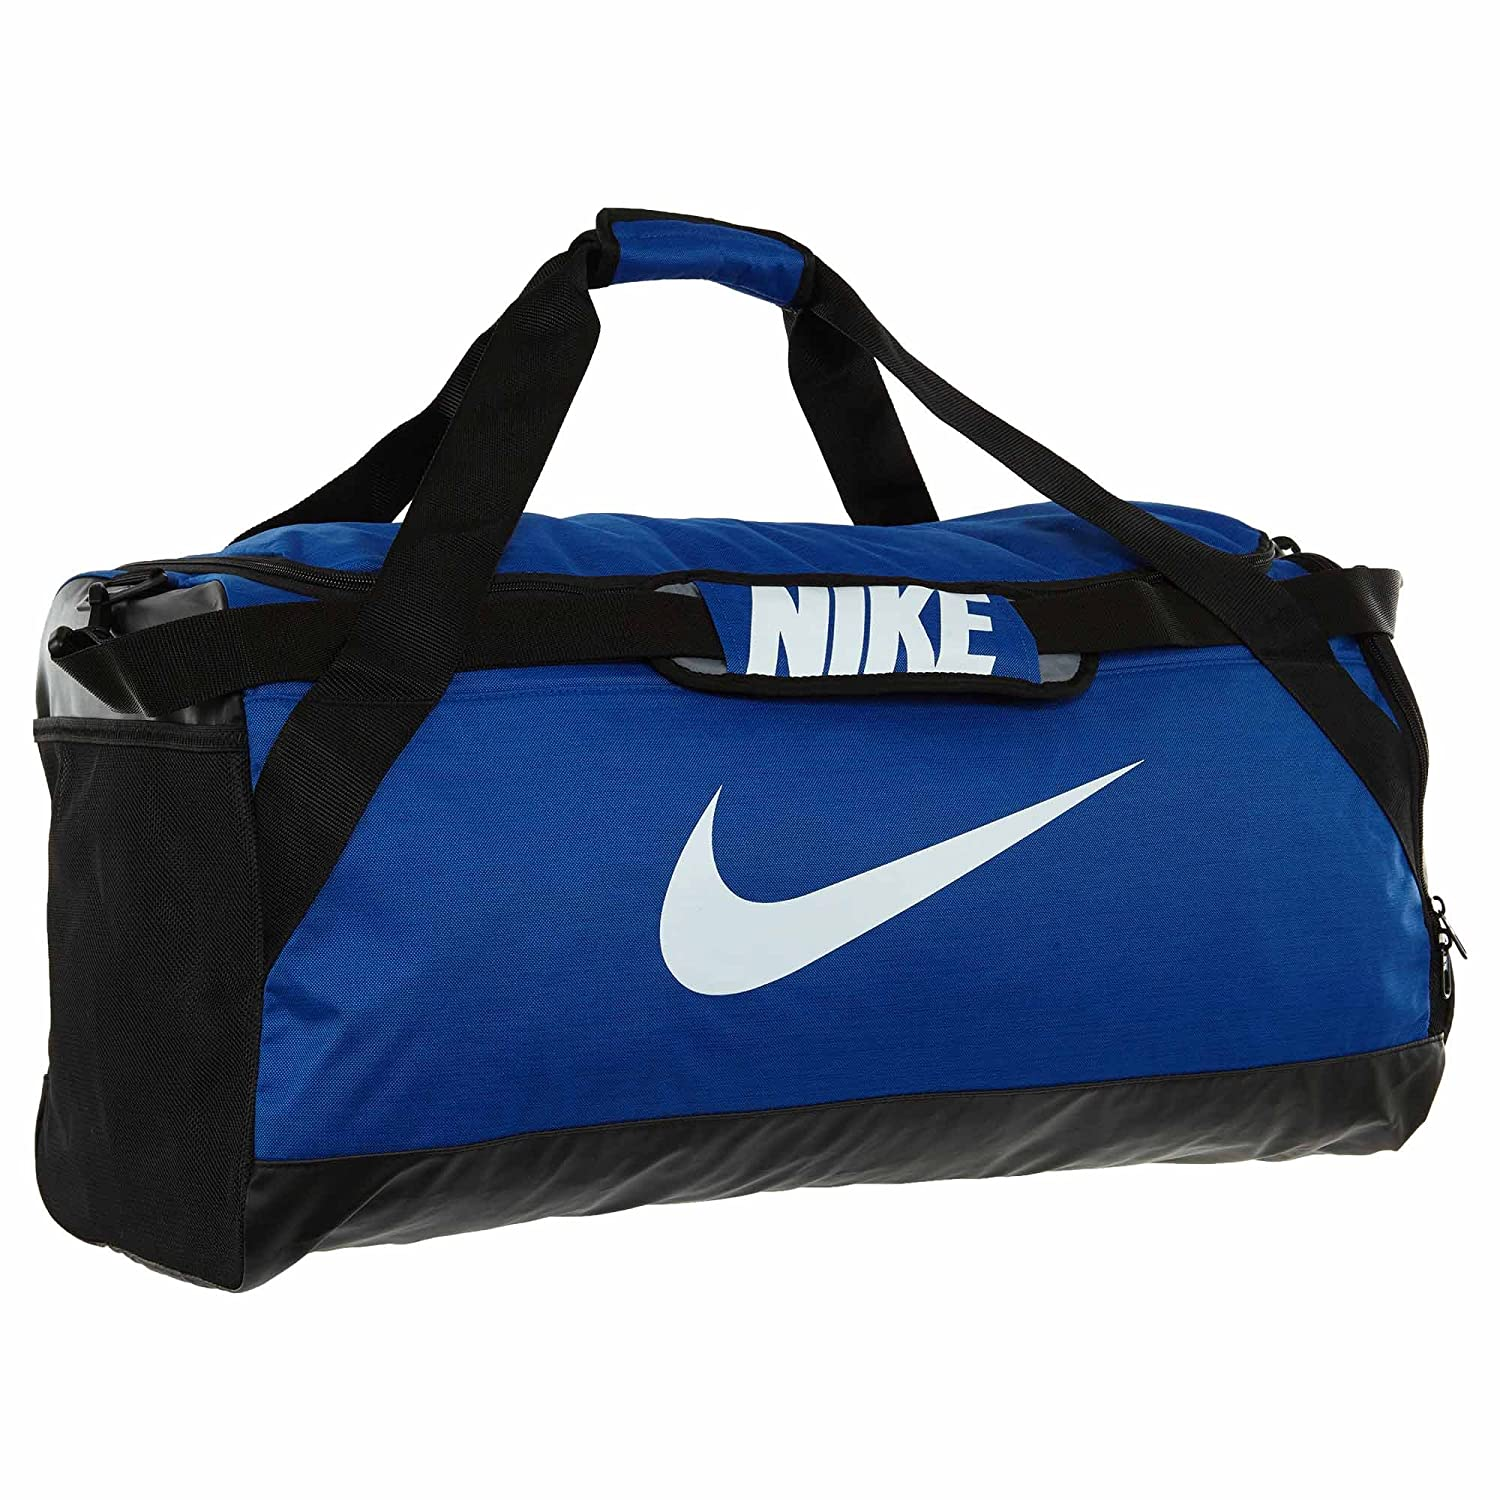 d60ef627a281 Amazon.com  NIKE Brasilia Training Duffel Bag